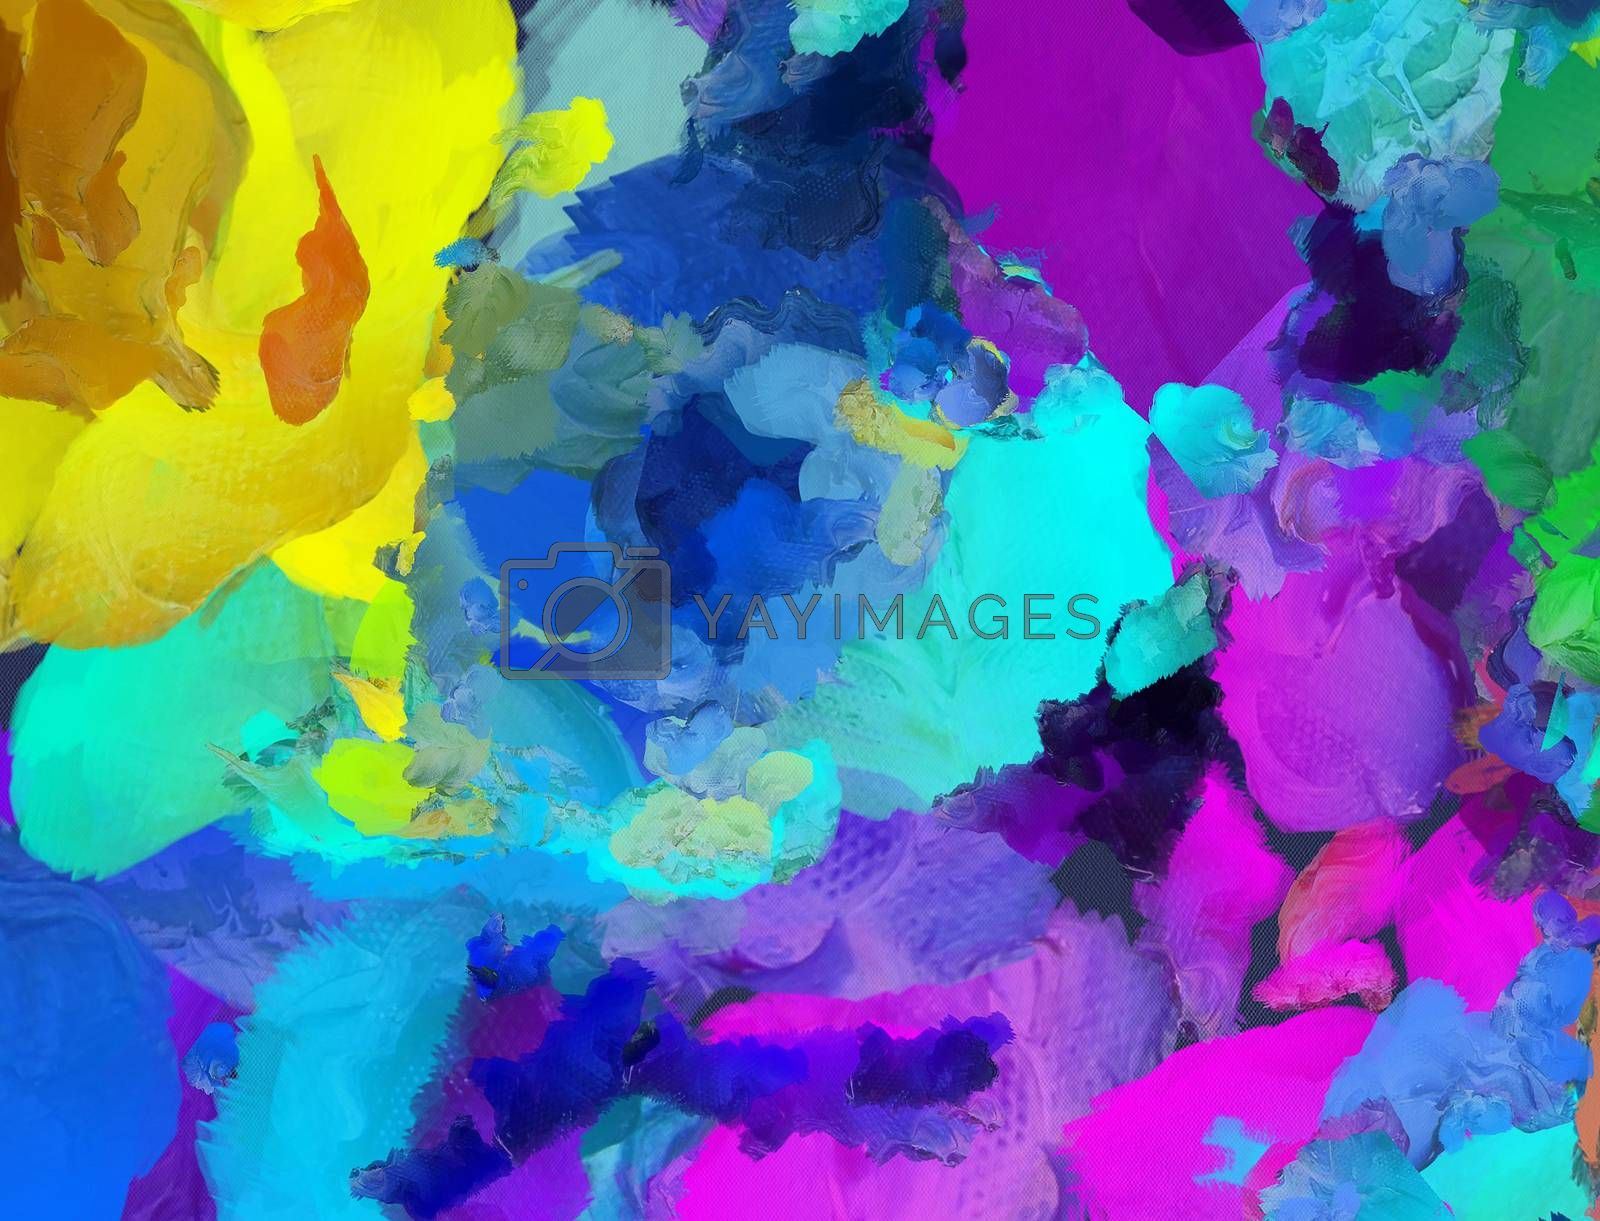 Colorful Abstract Painting. 3D rendering